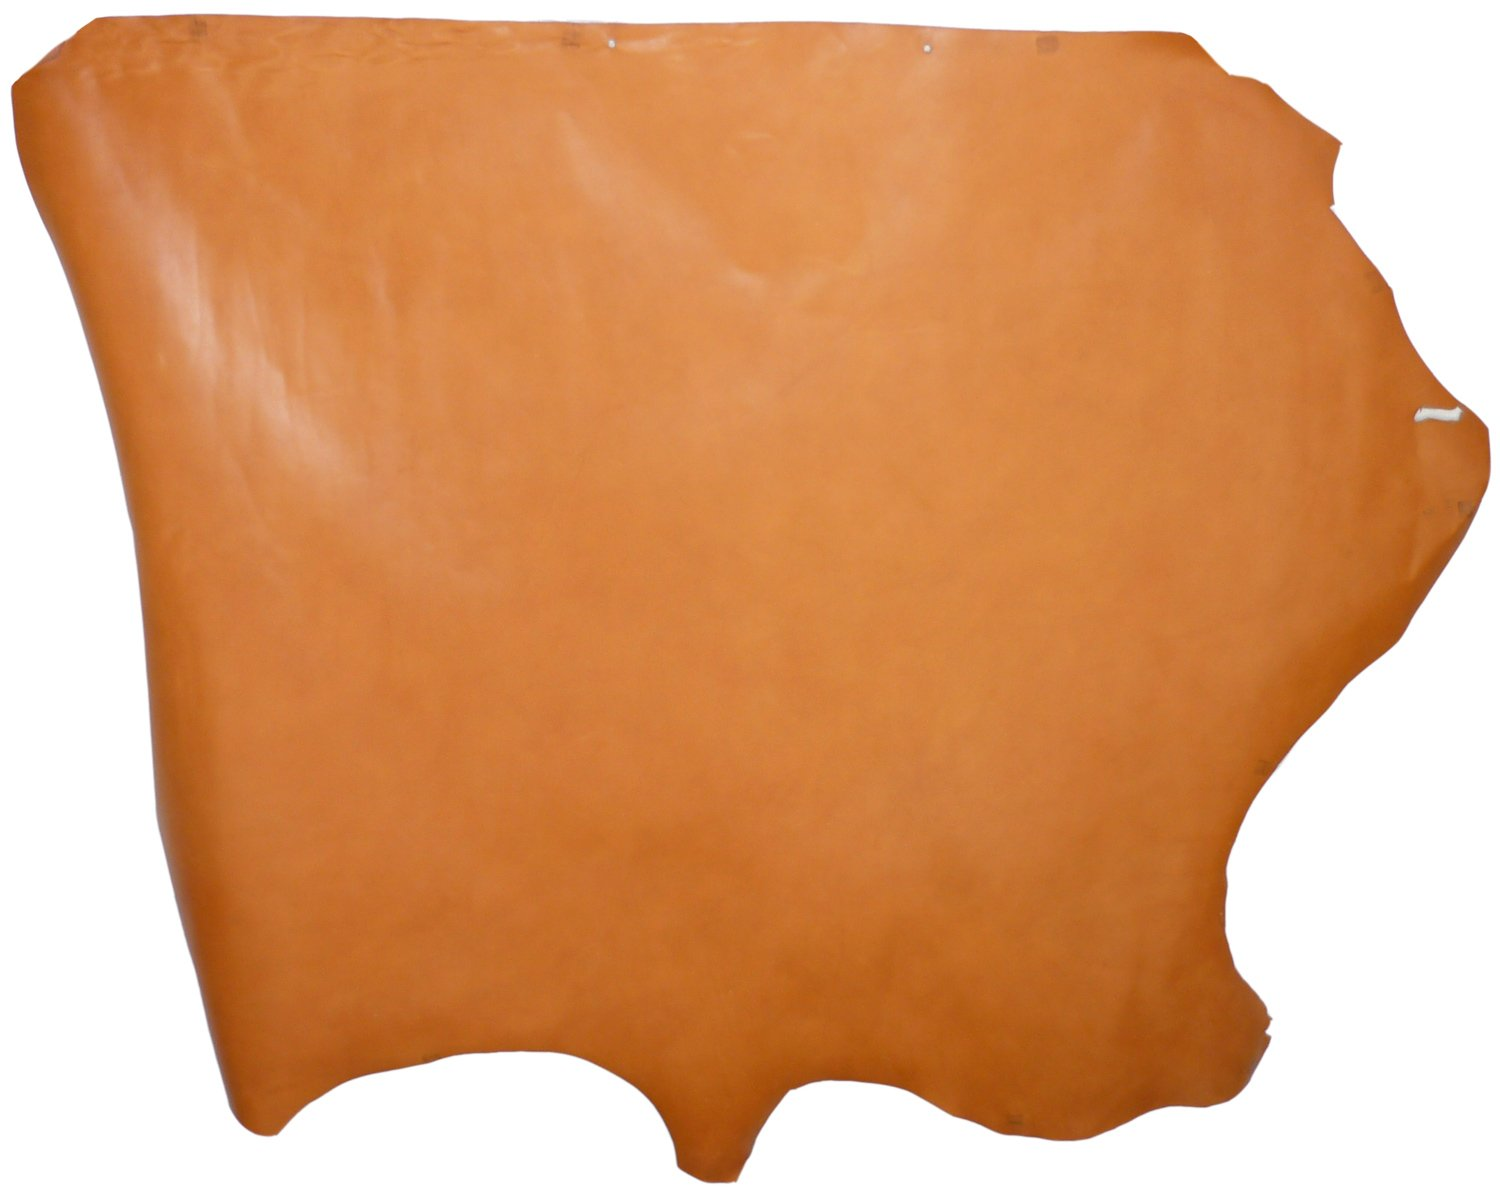 Calfskin Leather - Tan - 8 Square Feet